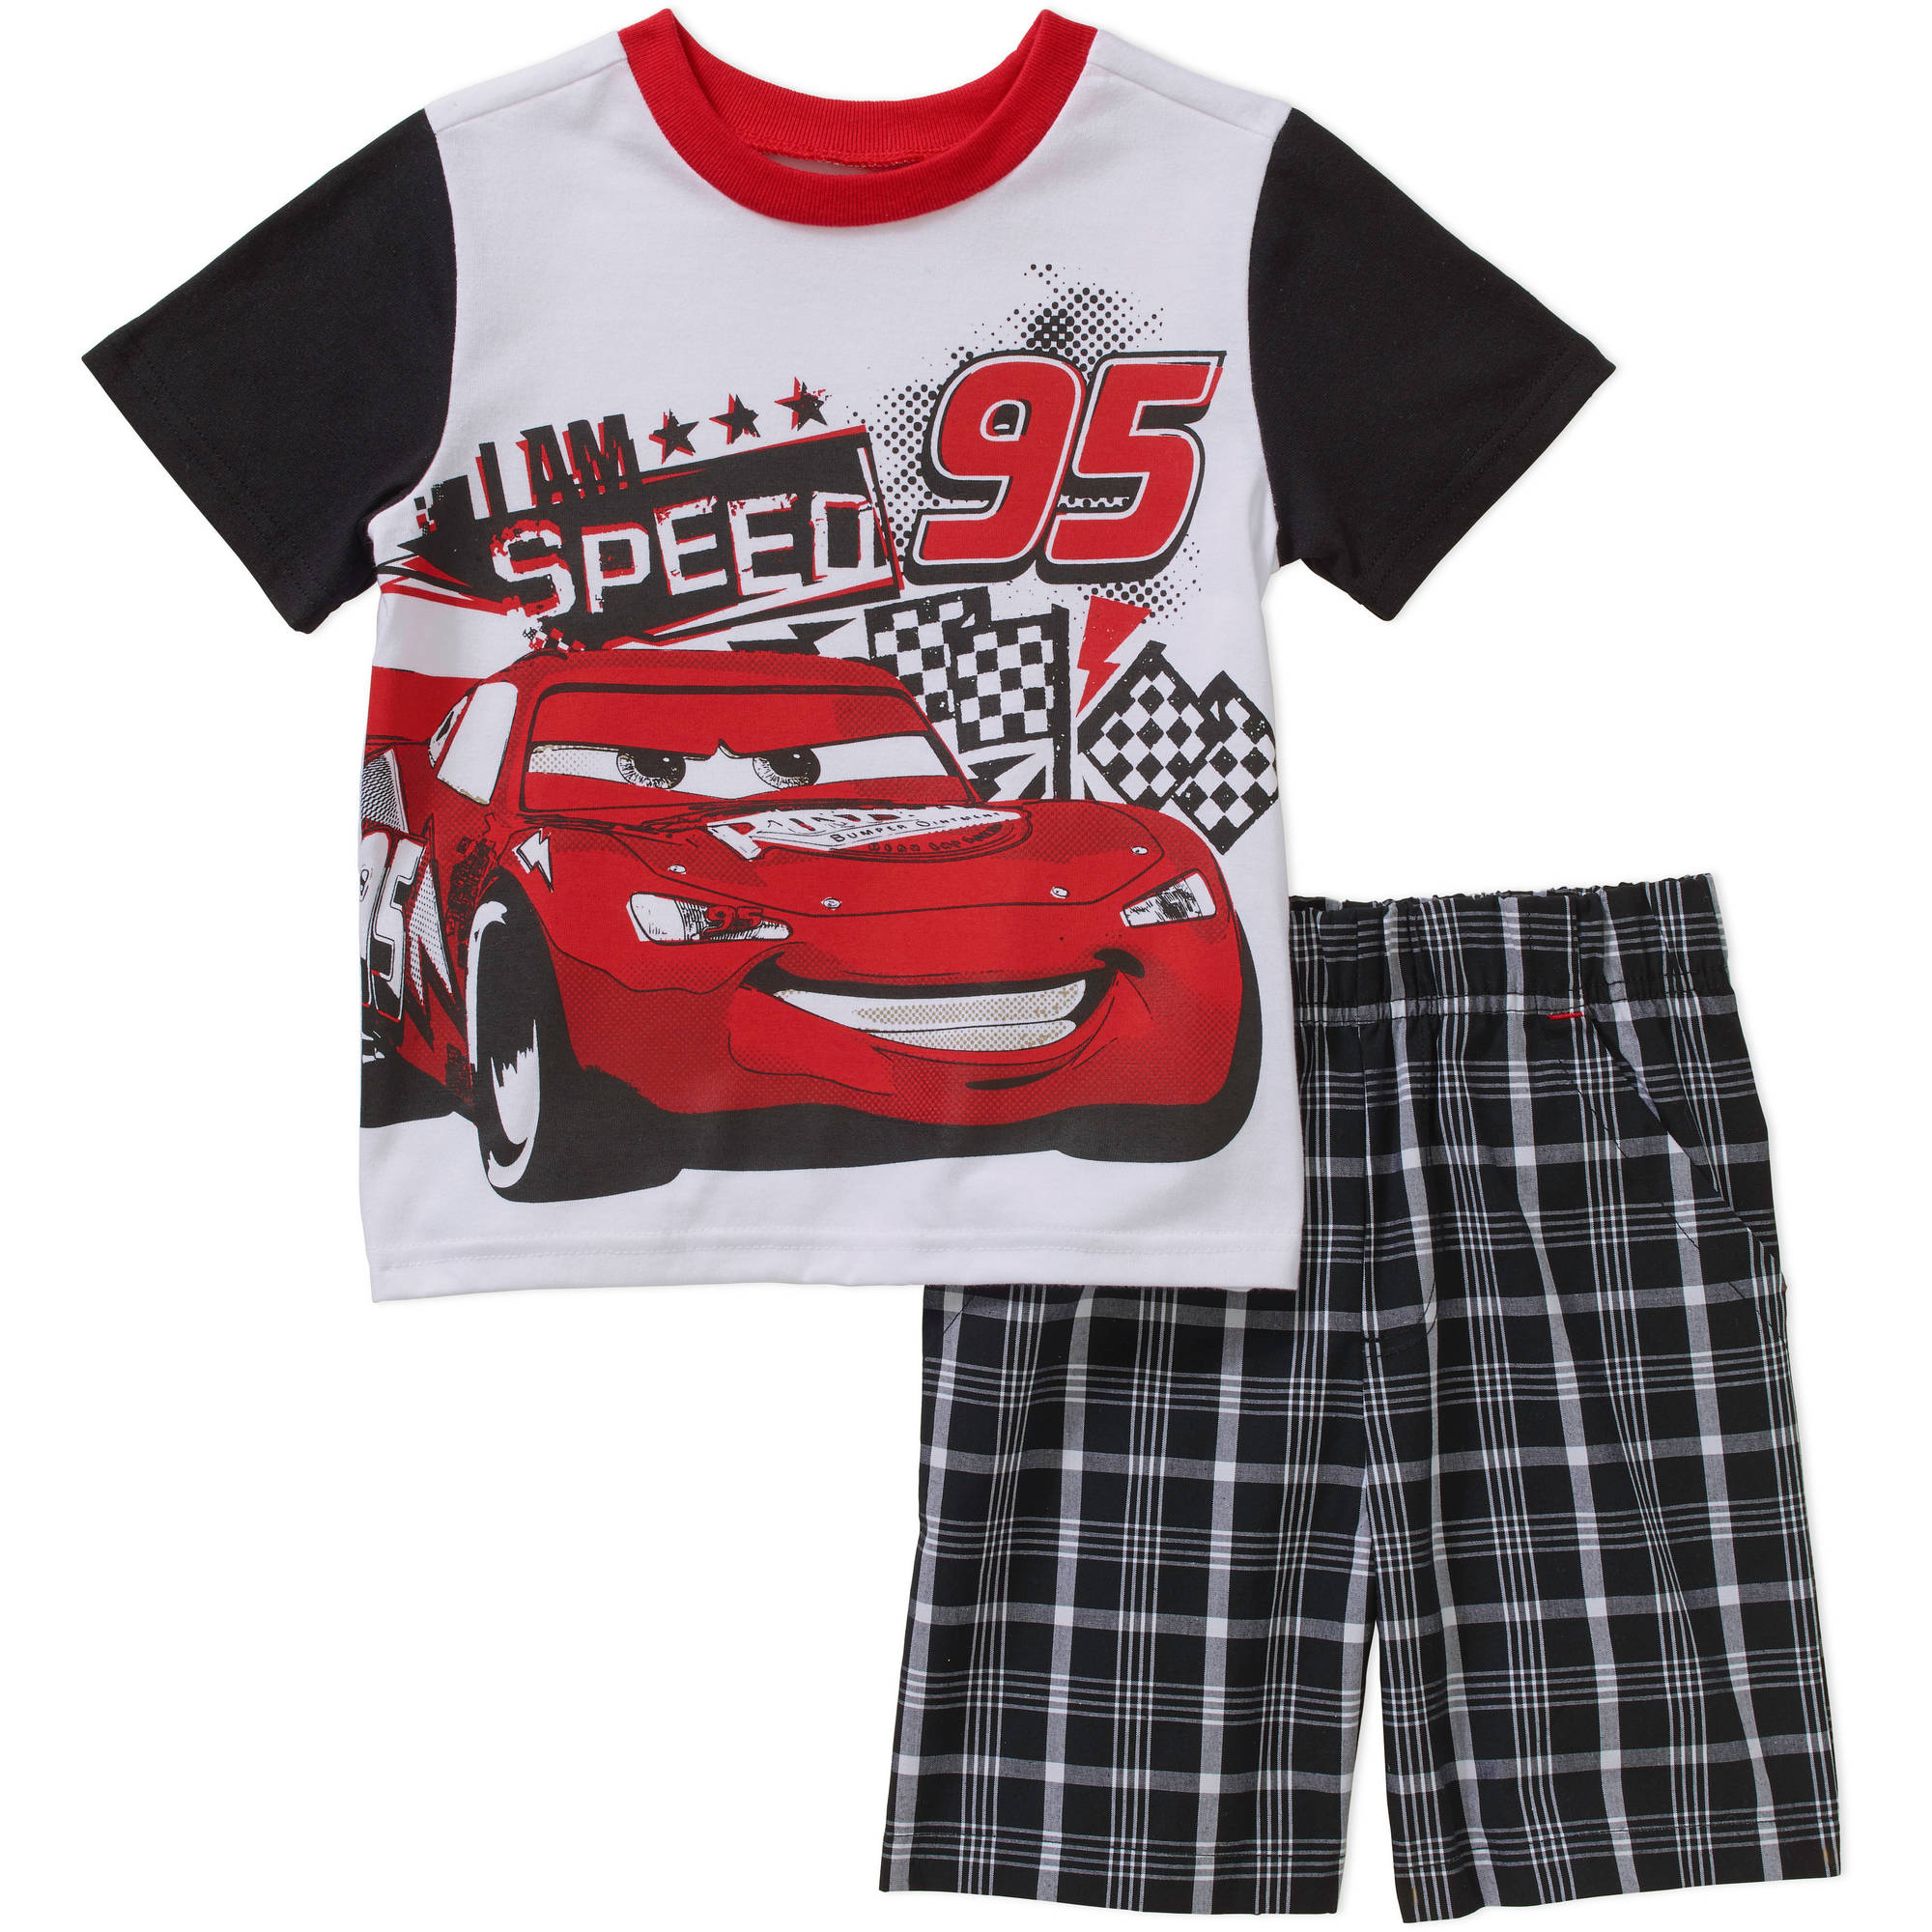 Disney Cars Lightning McQueen Toddler Boys' Tee and Shorts Outfit Set